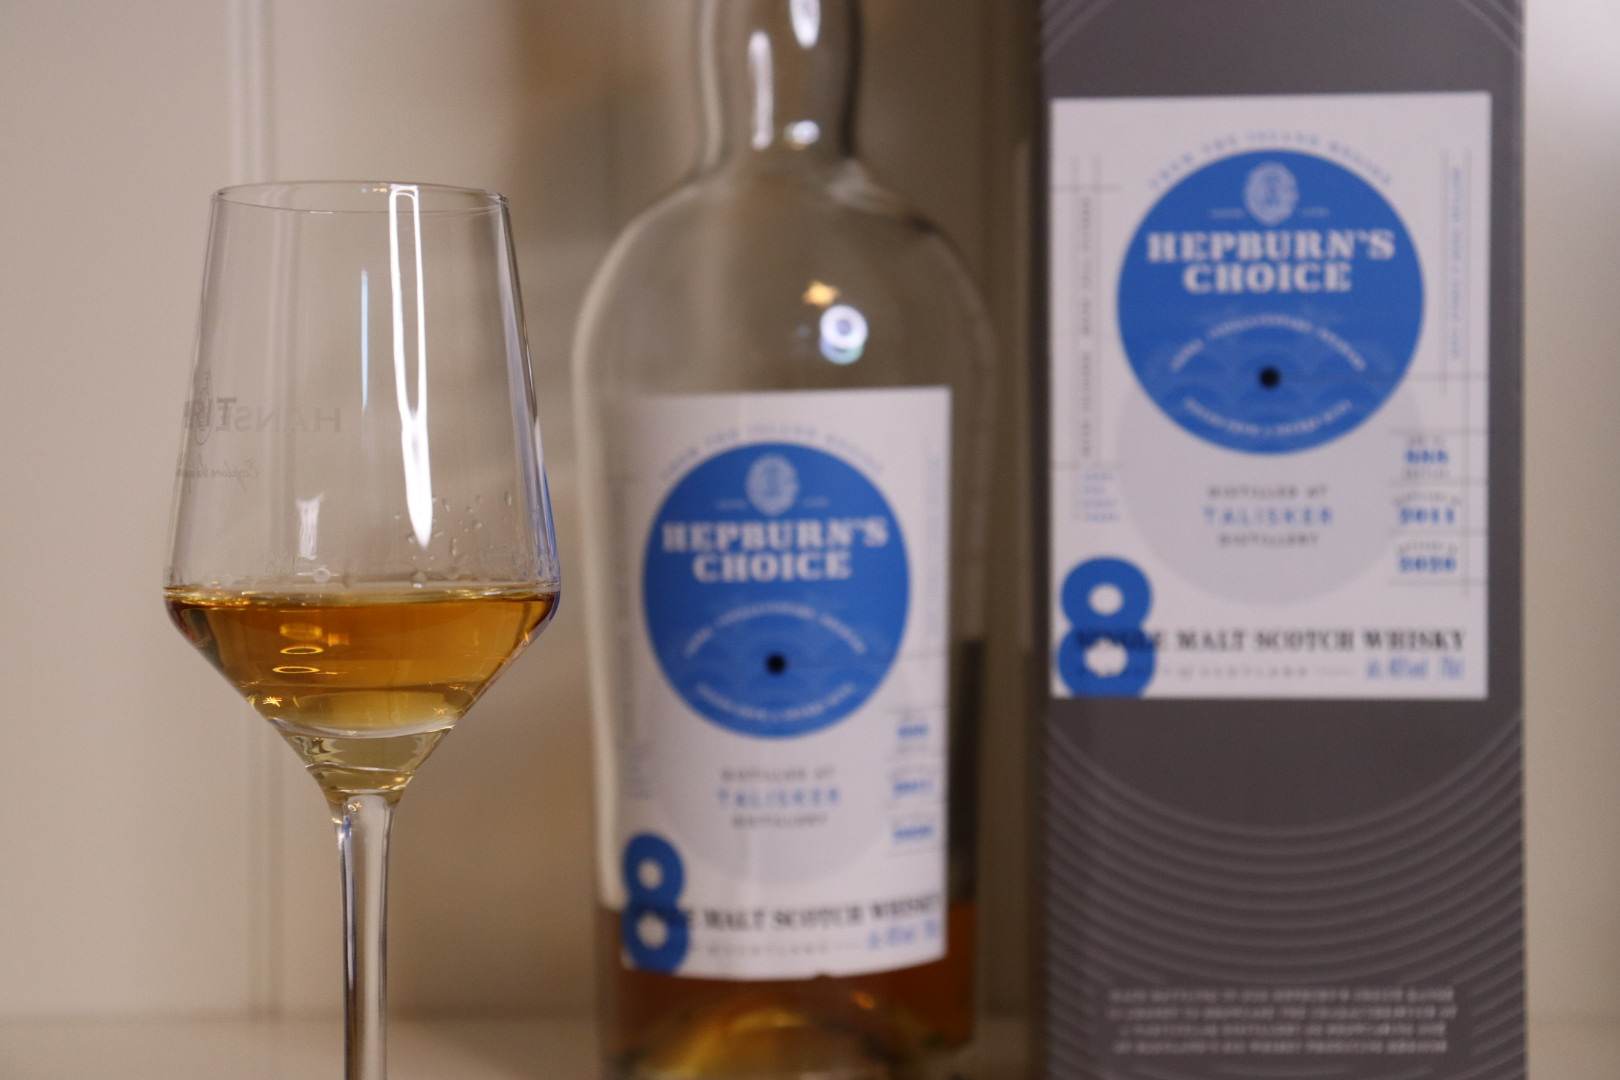 Whisky Review #188: Talisker 8 Jahre - Hepburn's Choice